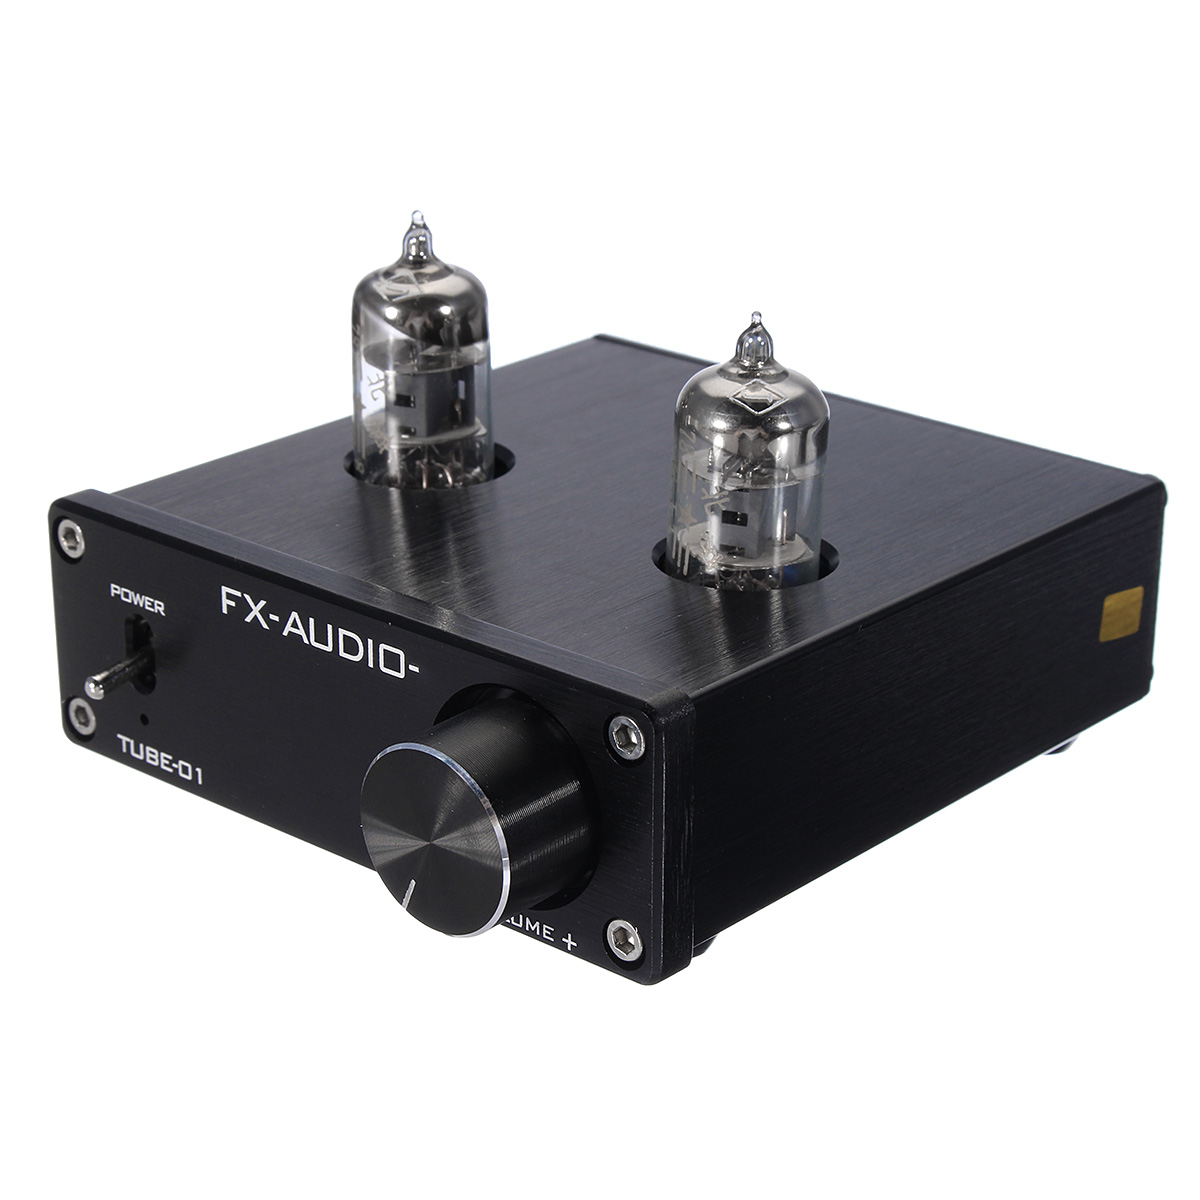 FX-Audio Tube-01 Mini 6J1 Valve Vacuum Tube Pre-Amplifier Stereo Audio HiFi Buffer Amplifier